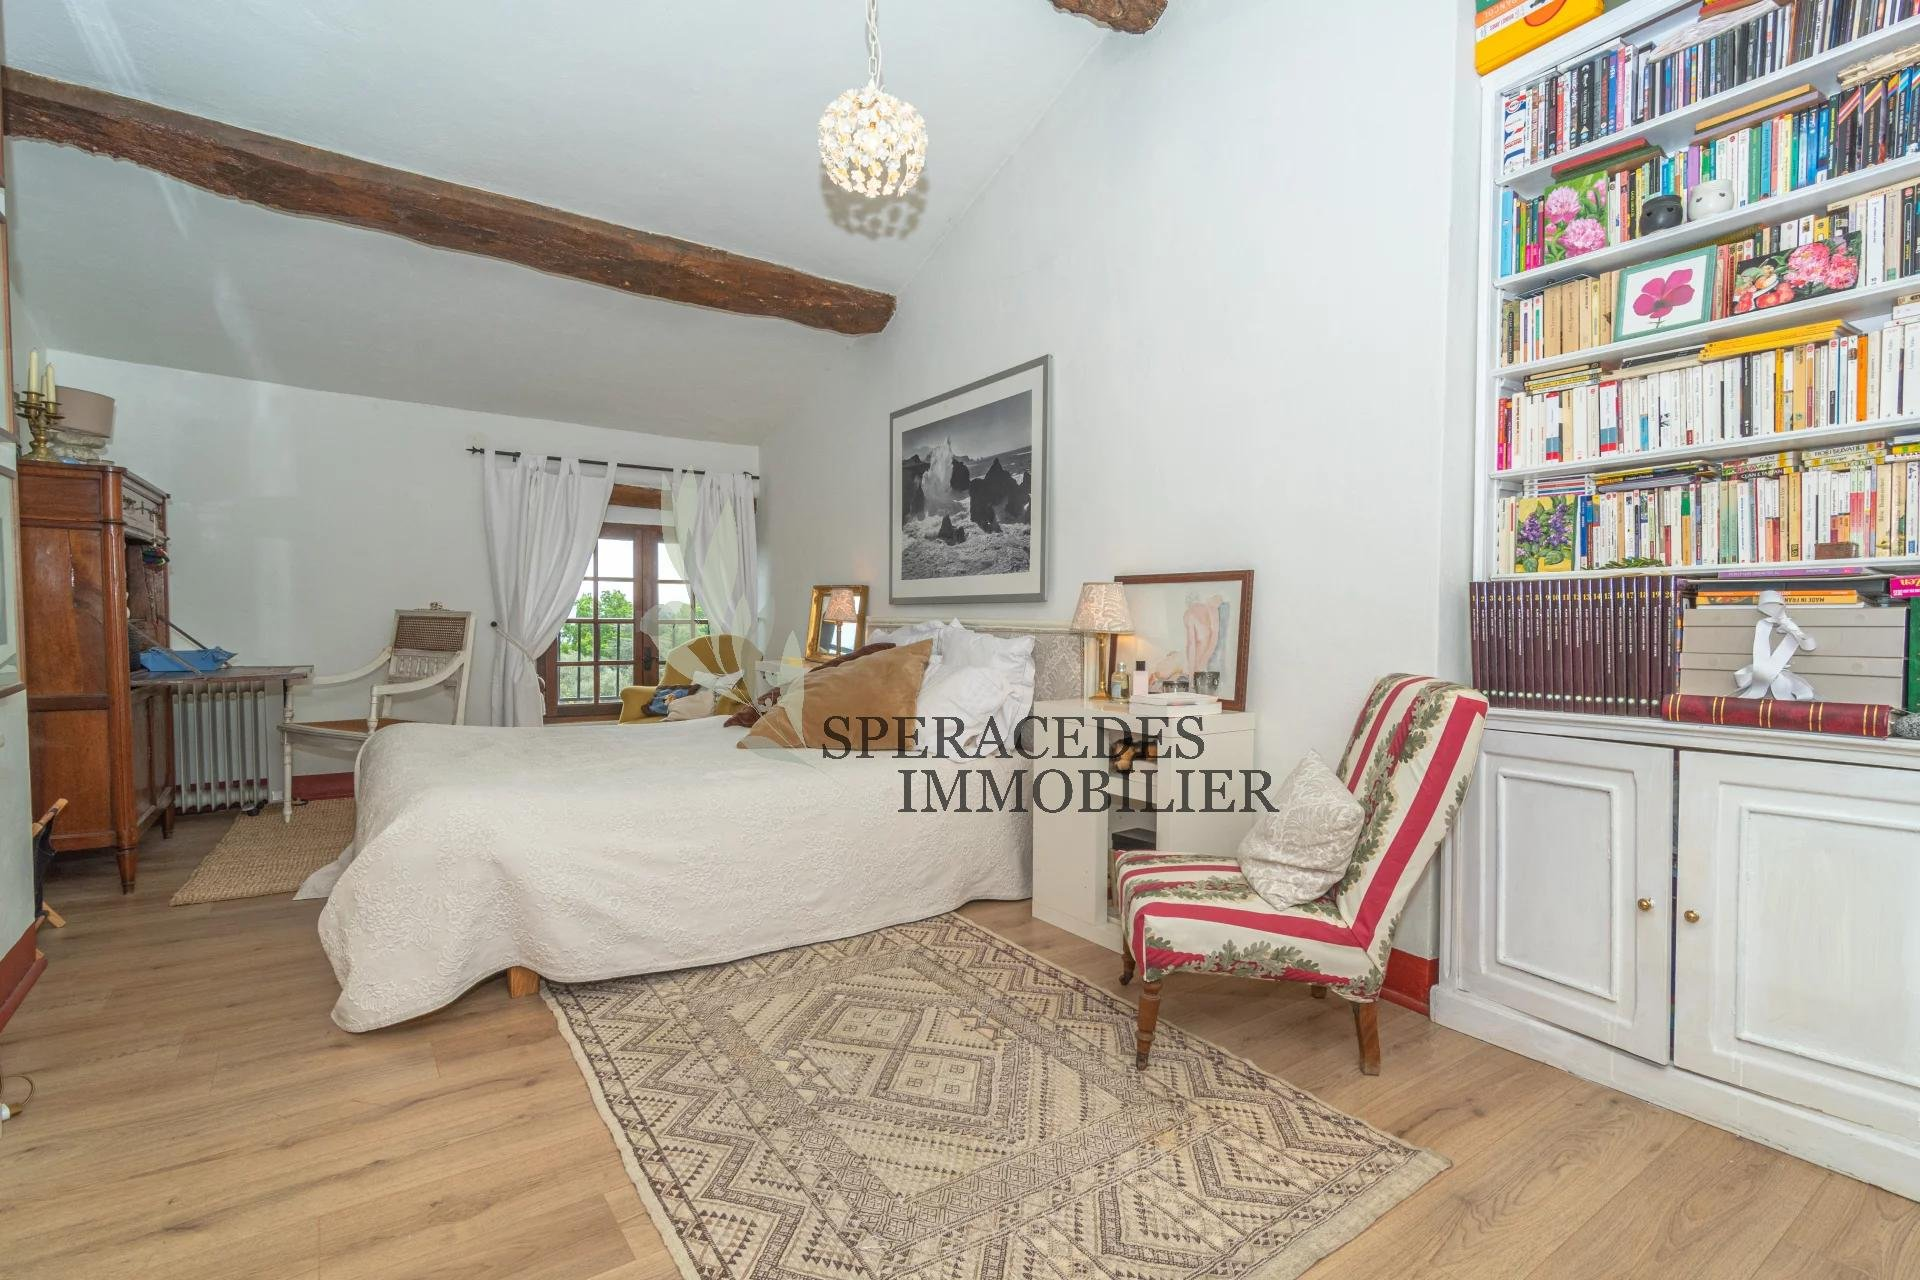 Spéracèdes - property located in the heart of the village